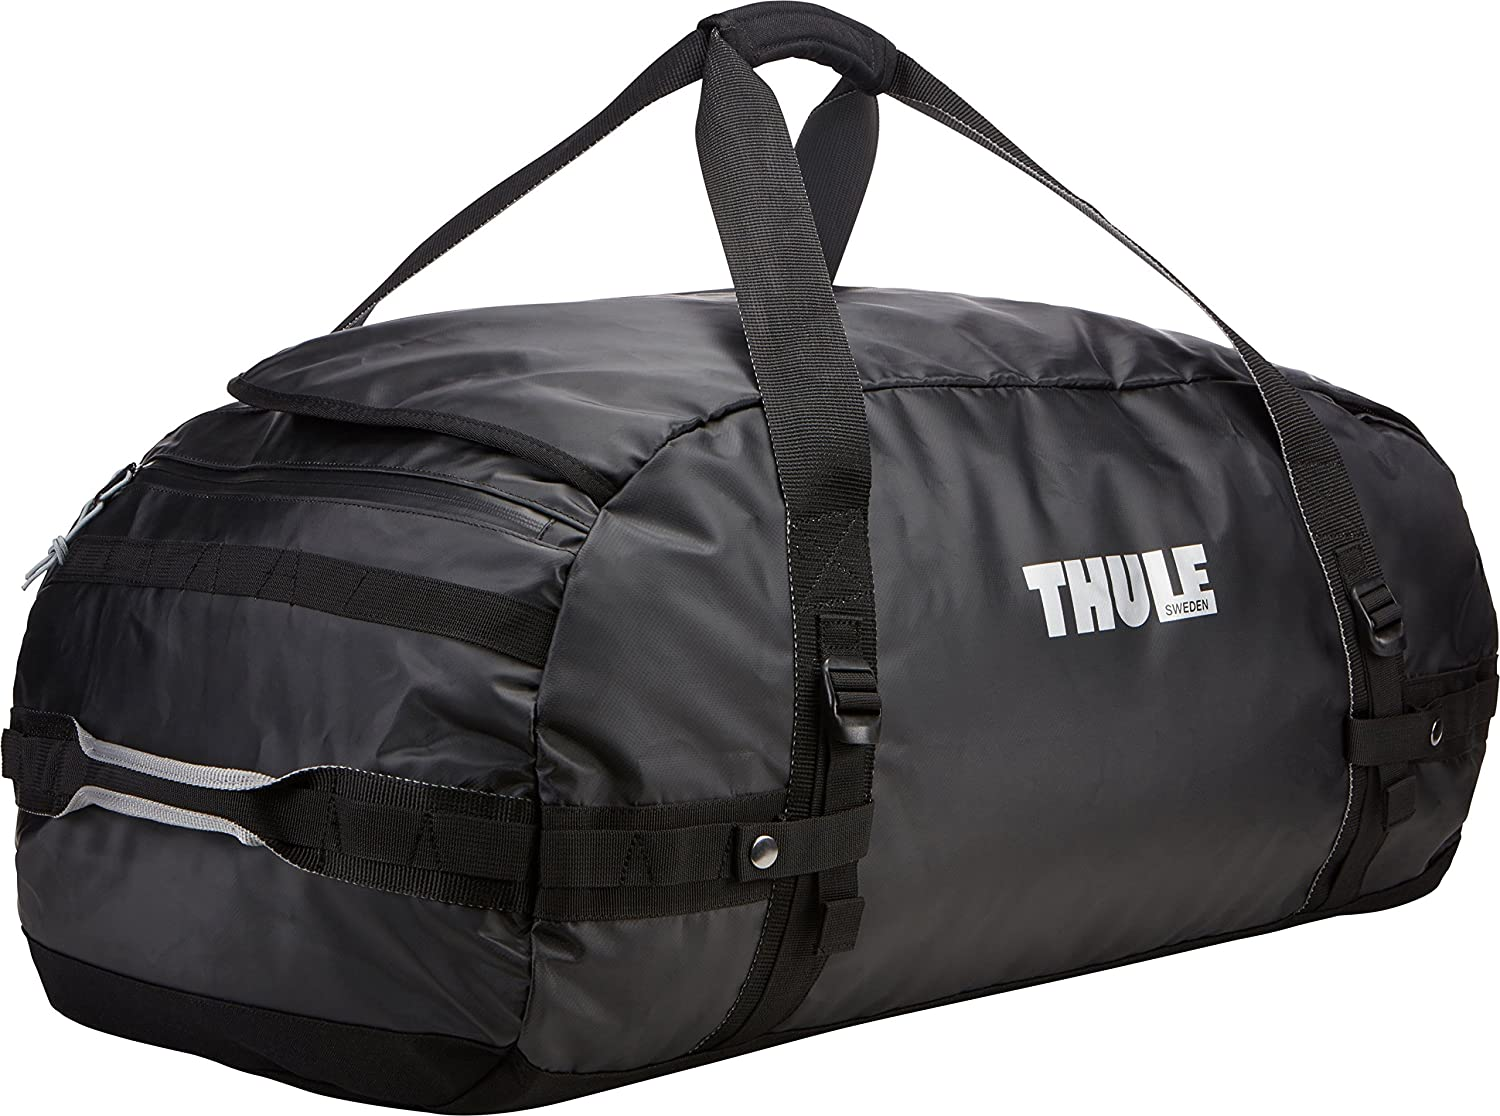 824b8be8bc Amazon.com  Thule Chasm Duffel Bag